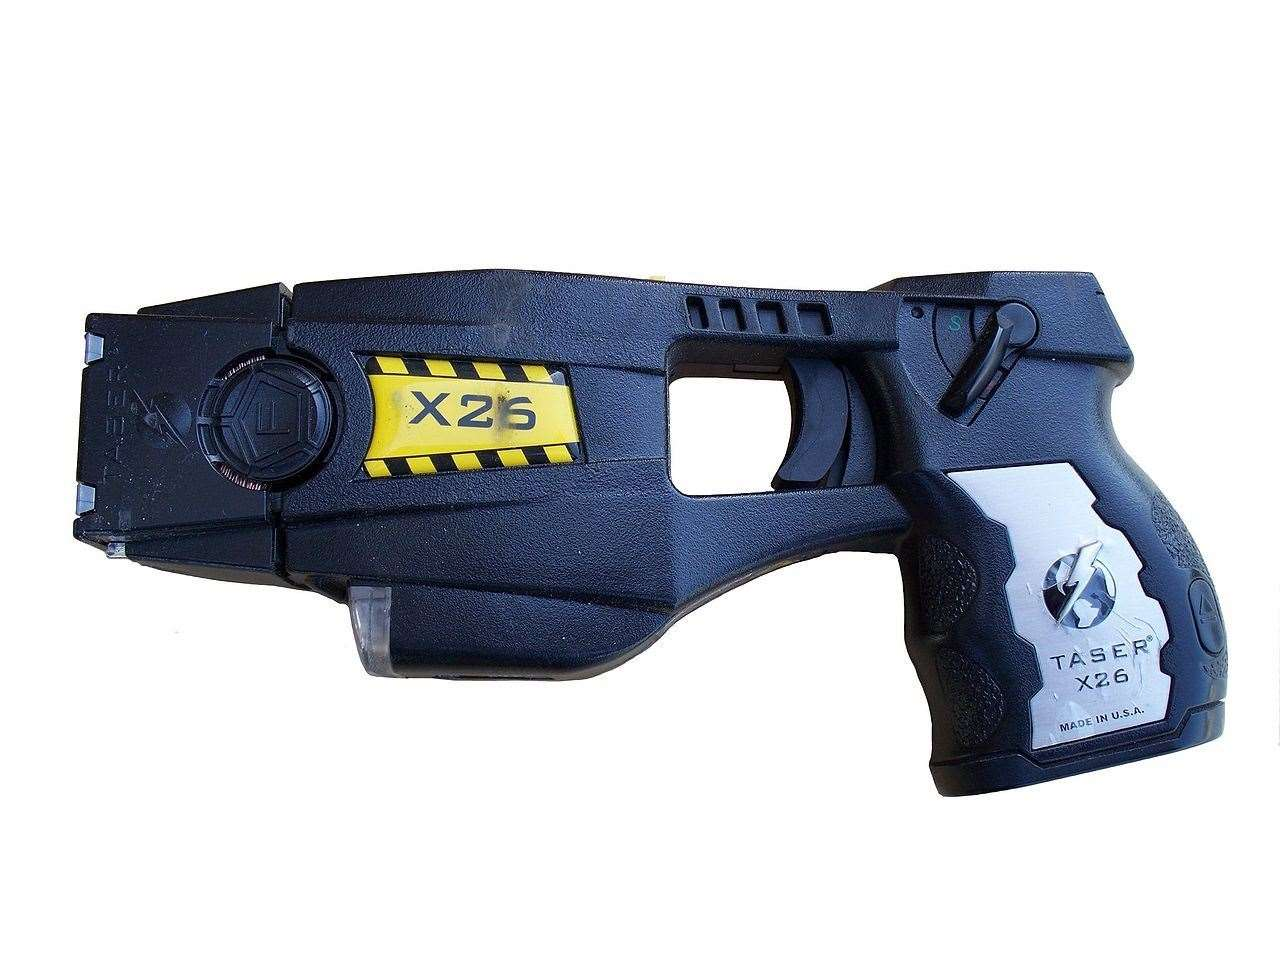 A law enforcement Taser